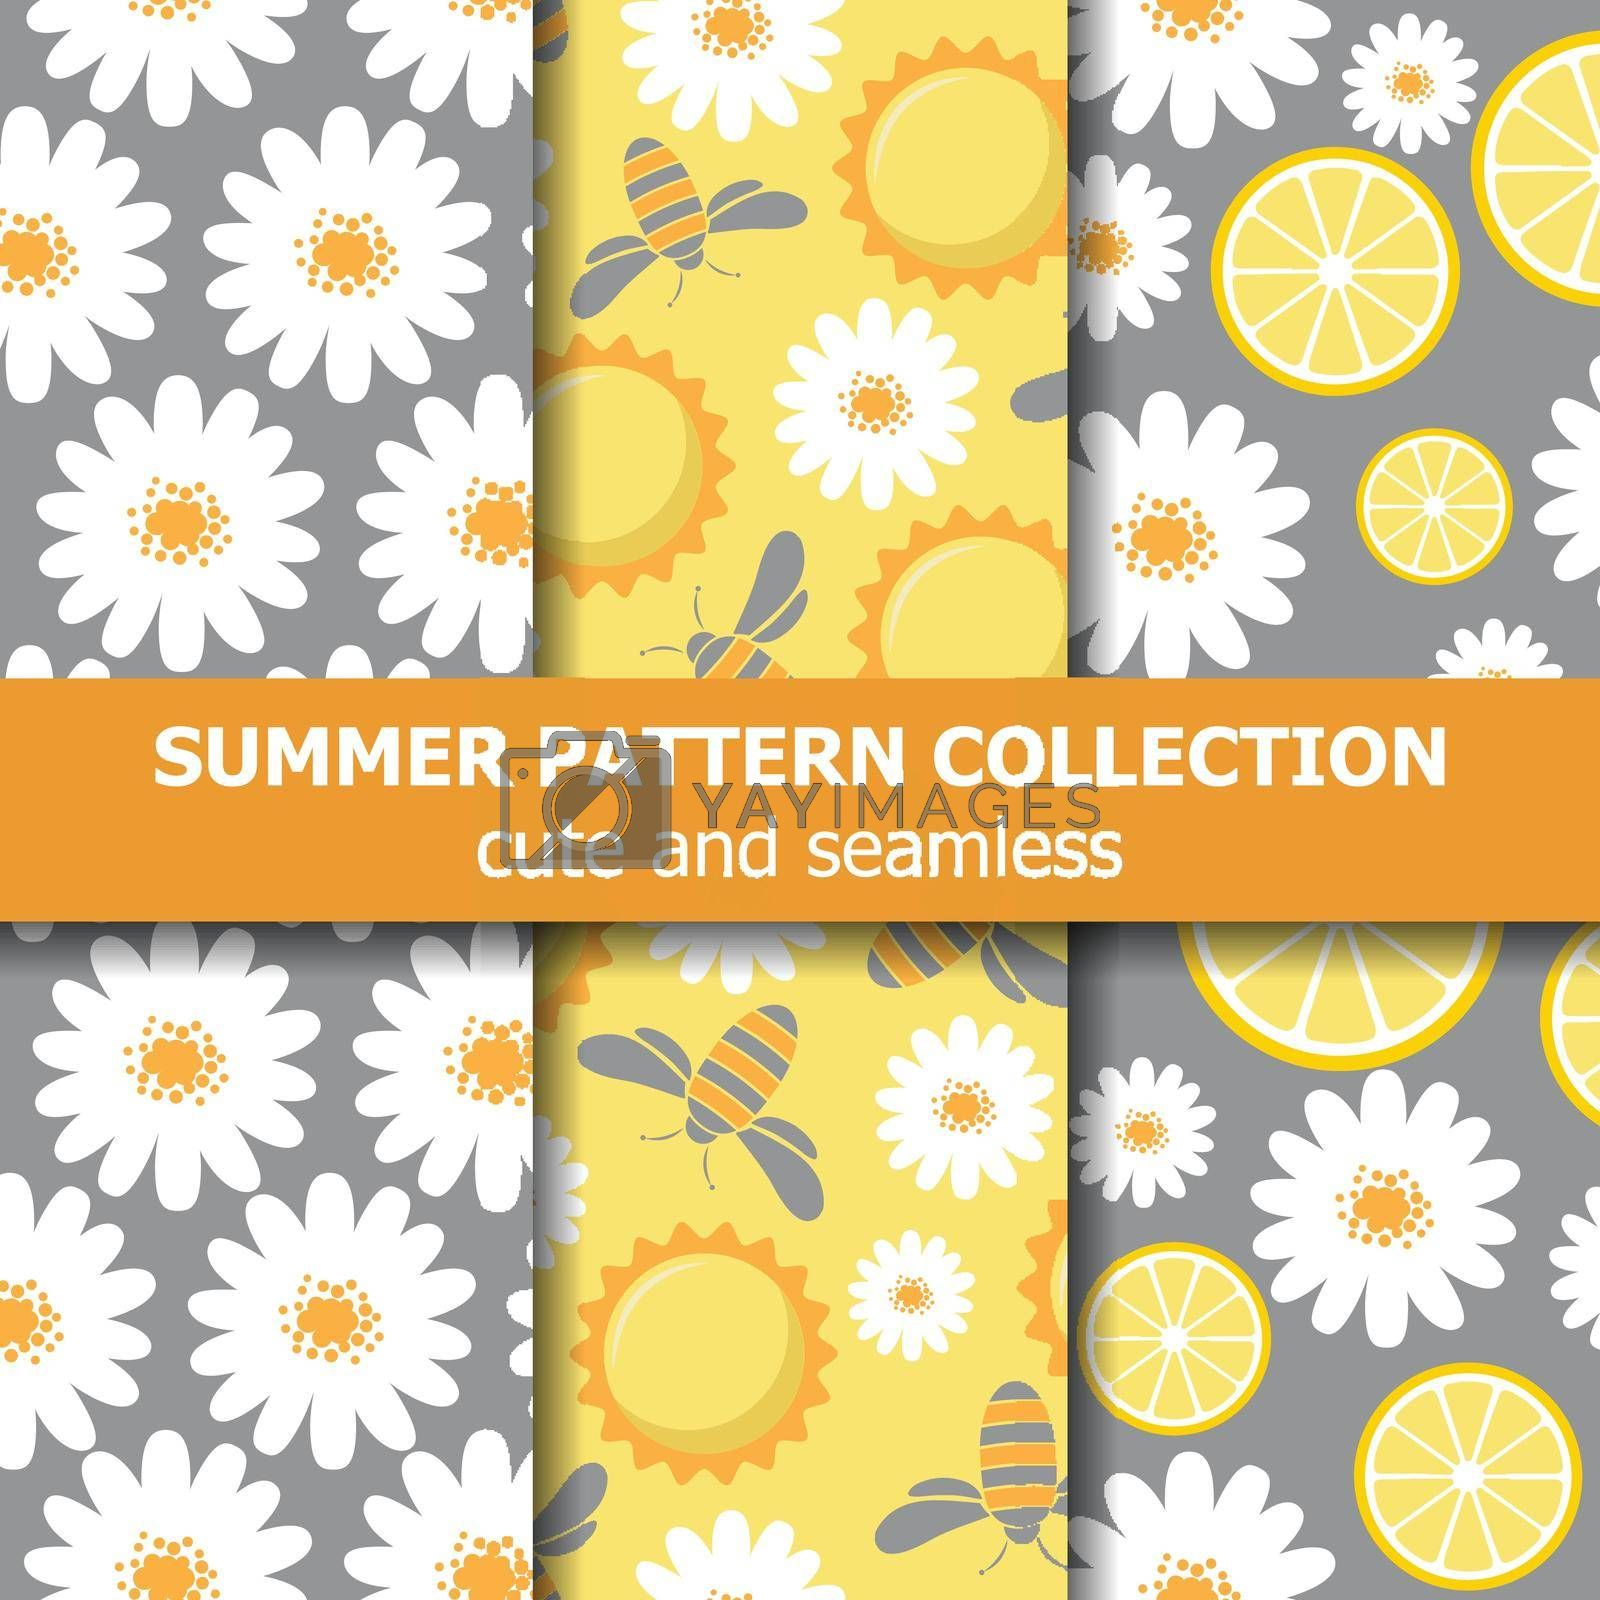 Beautiful pattern collection with daisies, lemons, bees and sun. Summer banner collection. Vector